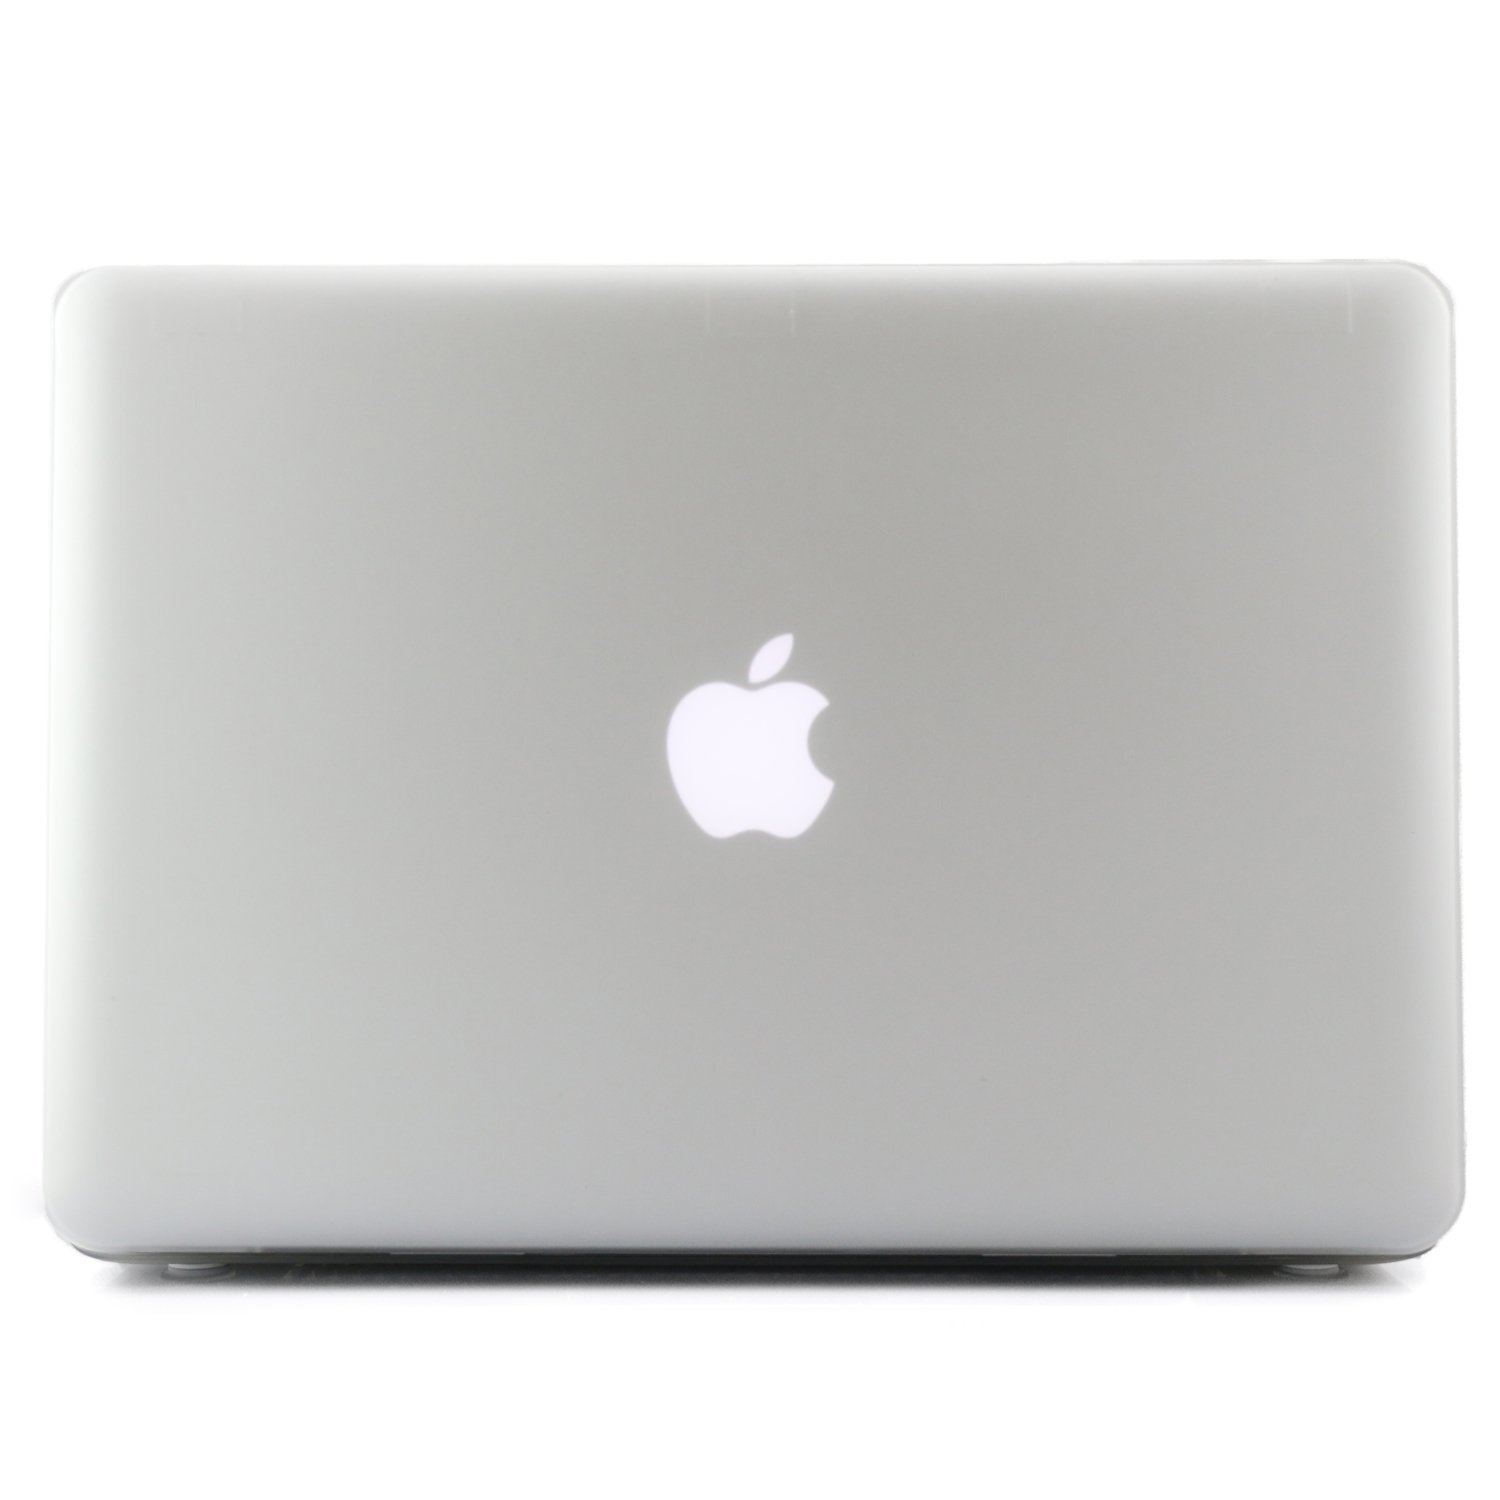 Case Soft Touch Plastic Source · Welink 3 in 1 Matte Apple MacBook .